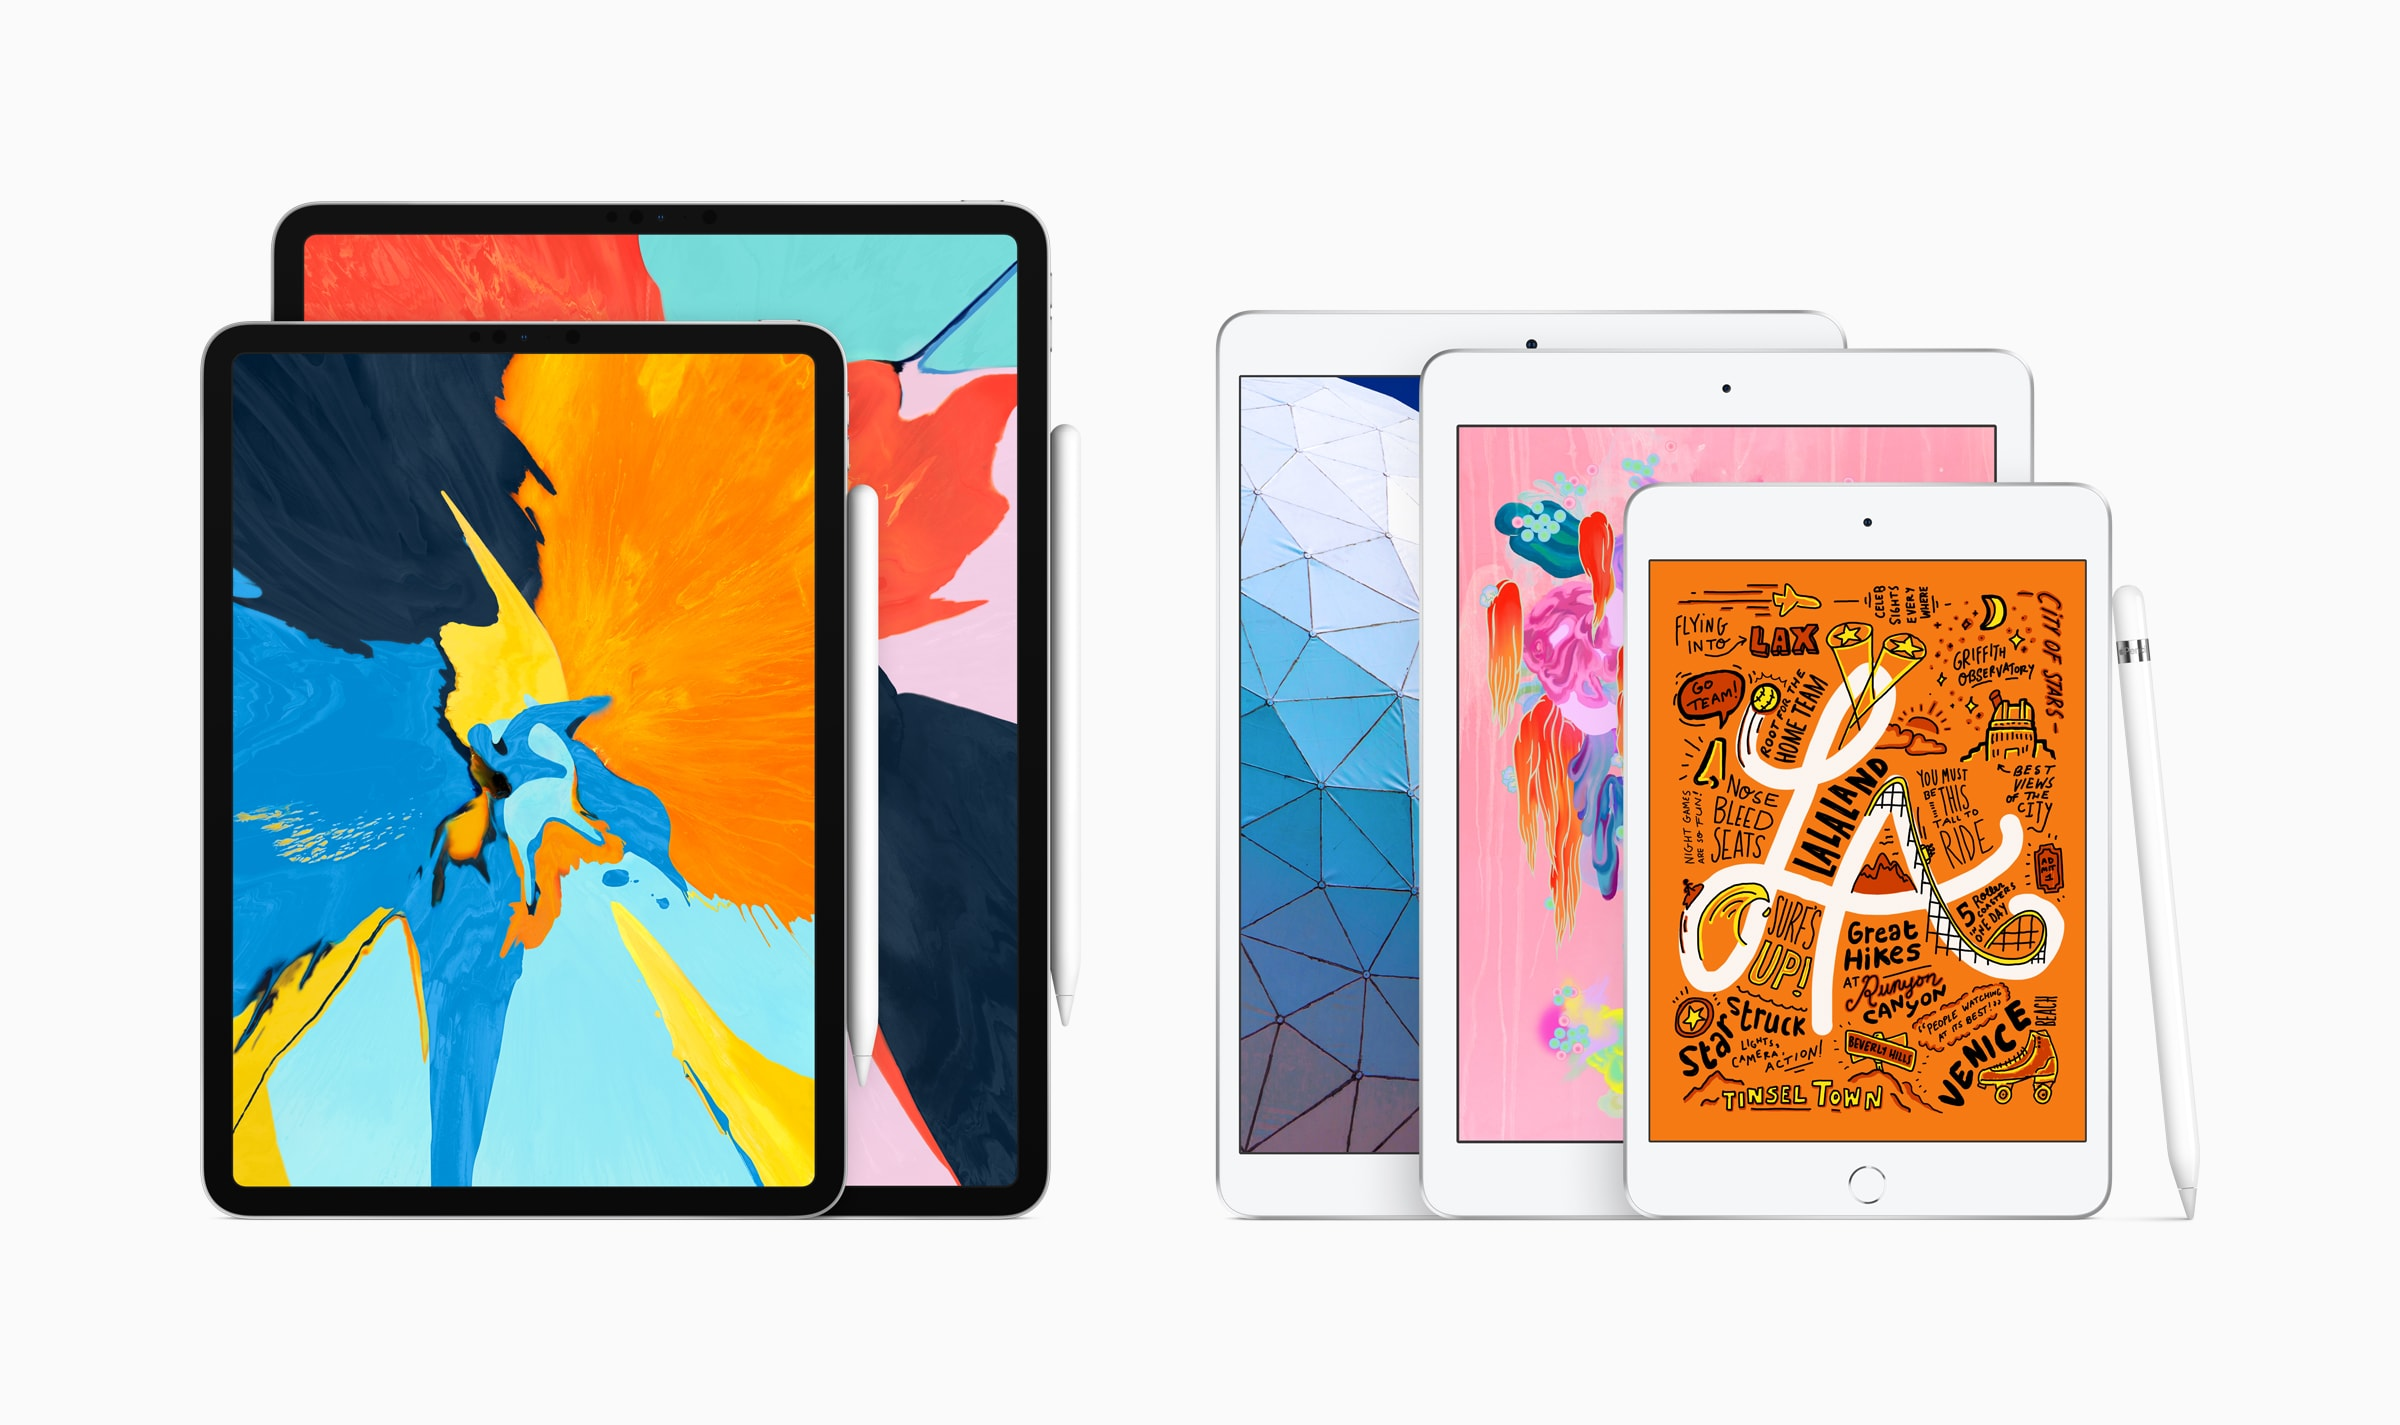 The complete iPad lineup now includes Apple Pencil support, best-in-class performance, advanced displays and all-day battery life, Apple says.